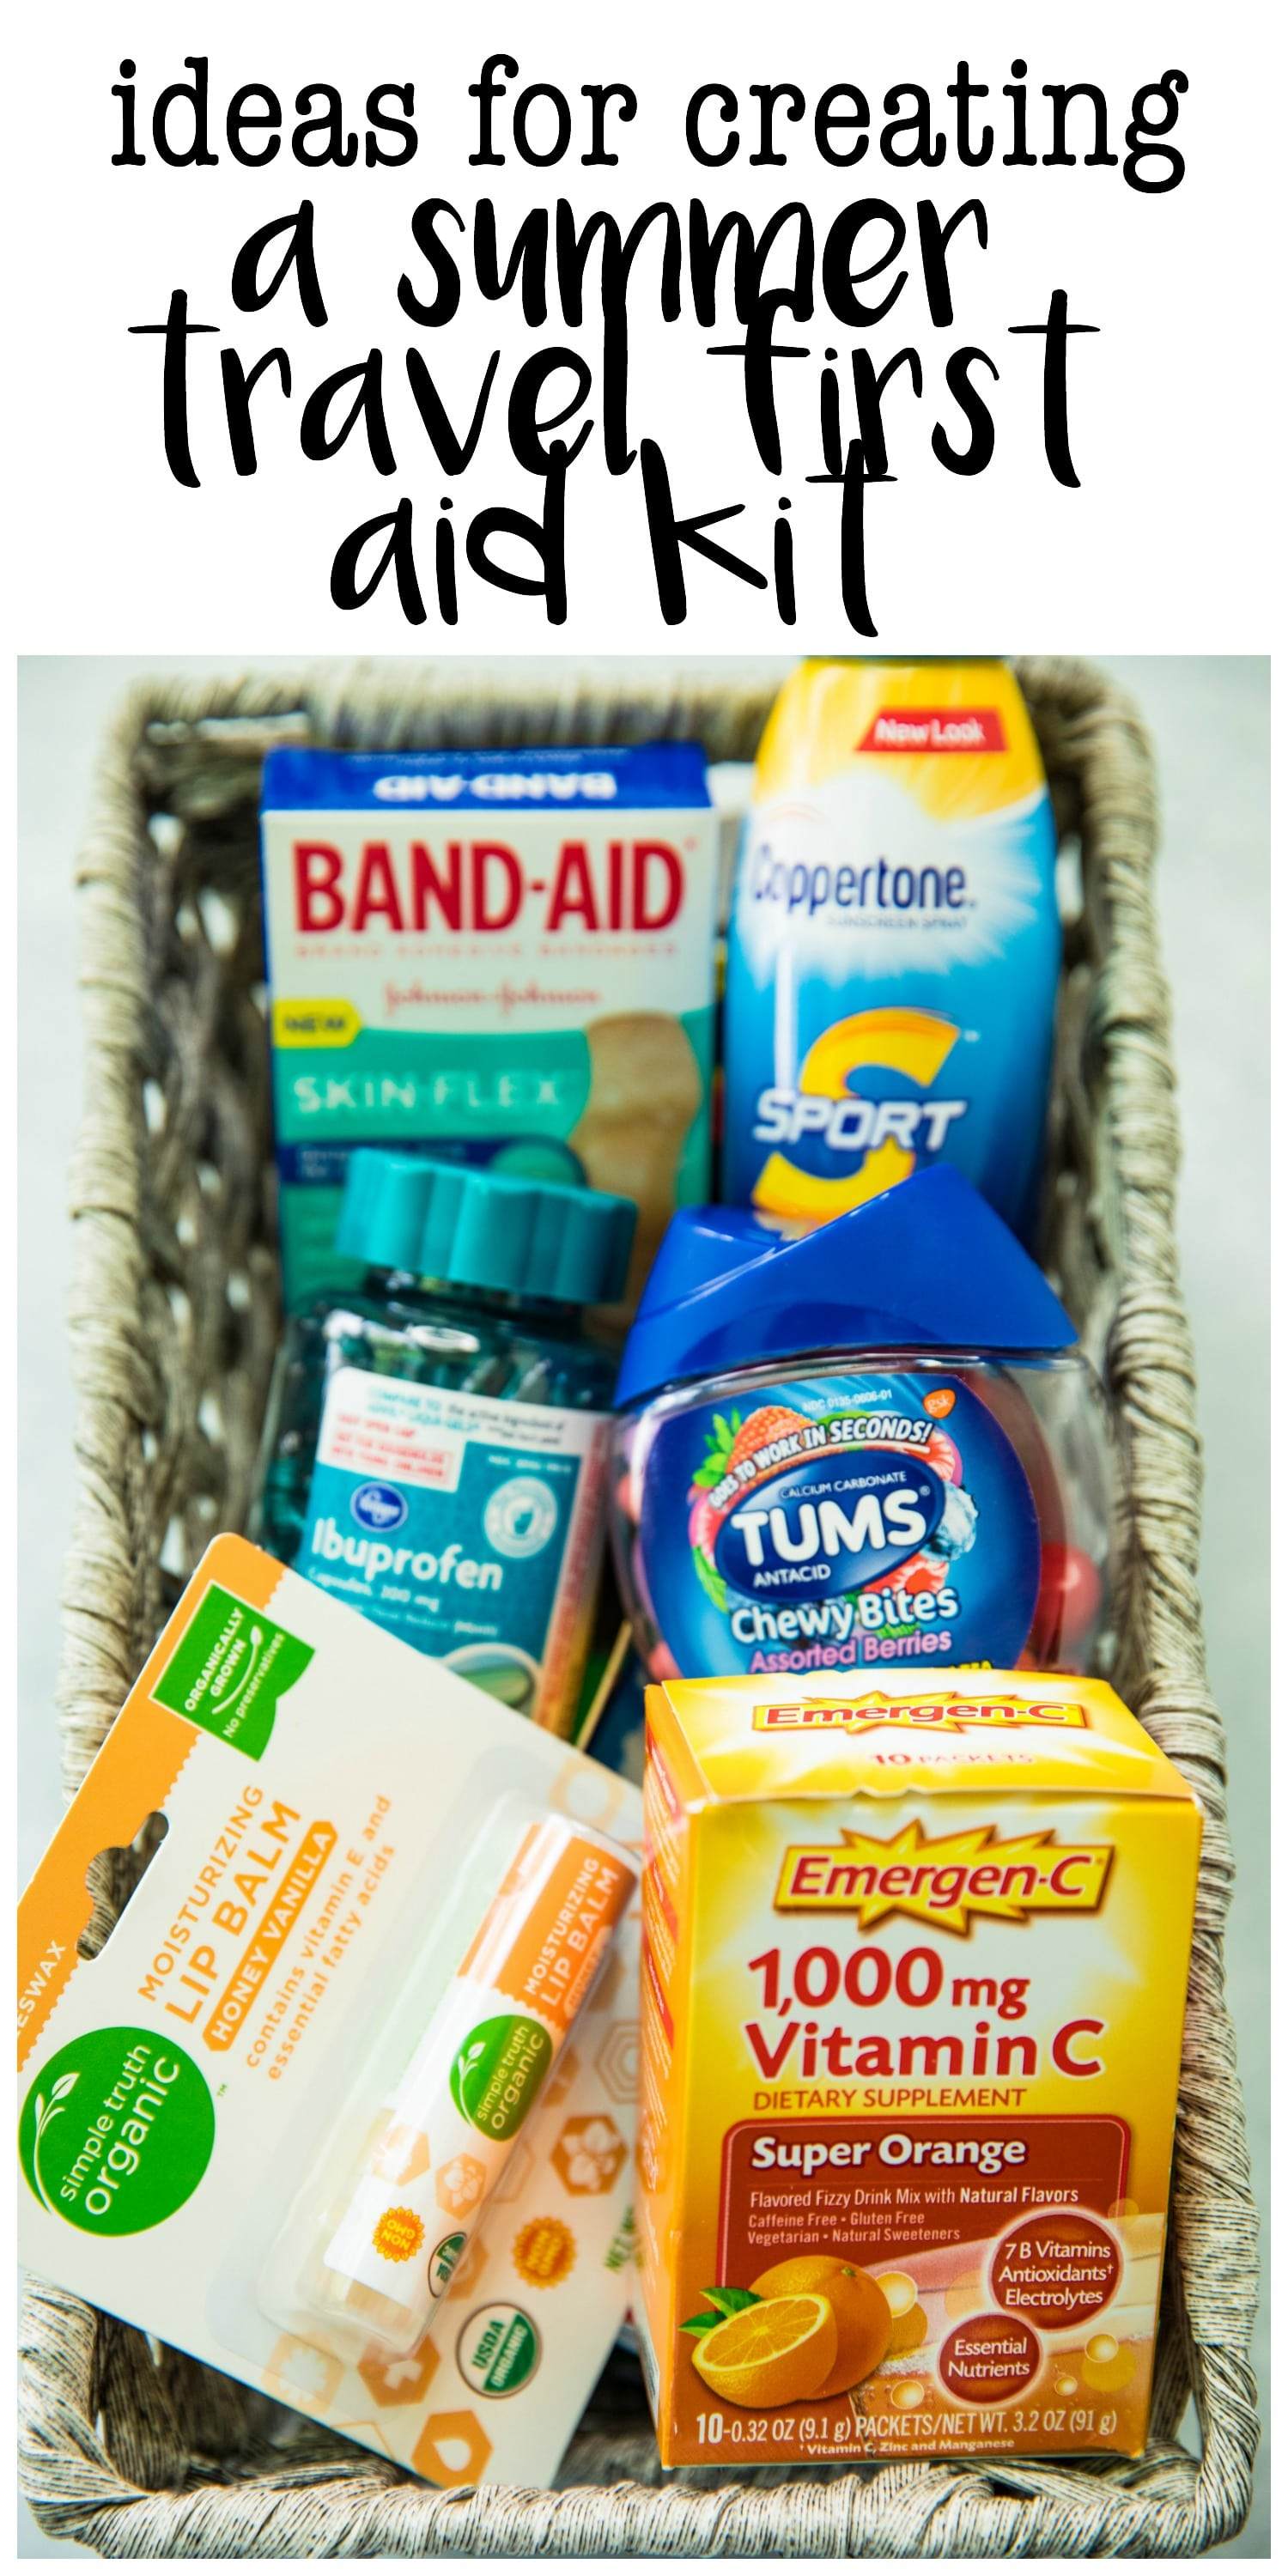 Summer is a busy and fun time of the year! If your family is anything like mine, you have plenty of vacations, outdoor activities,and family get togethers planned. A DIY Summer Travel First Aid Kit is a lifesaver to have on hand just in case your fun takes a turn for the worse.